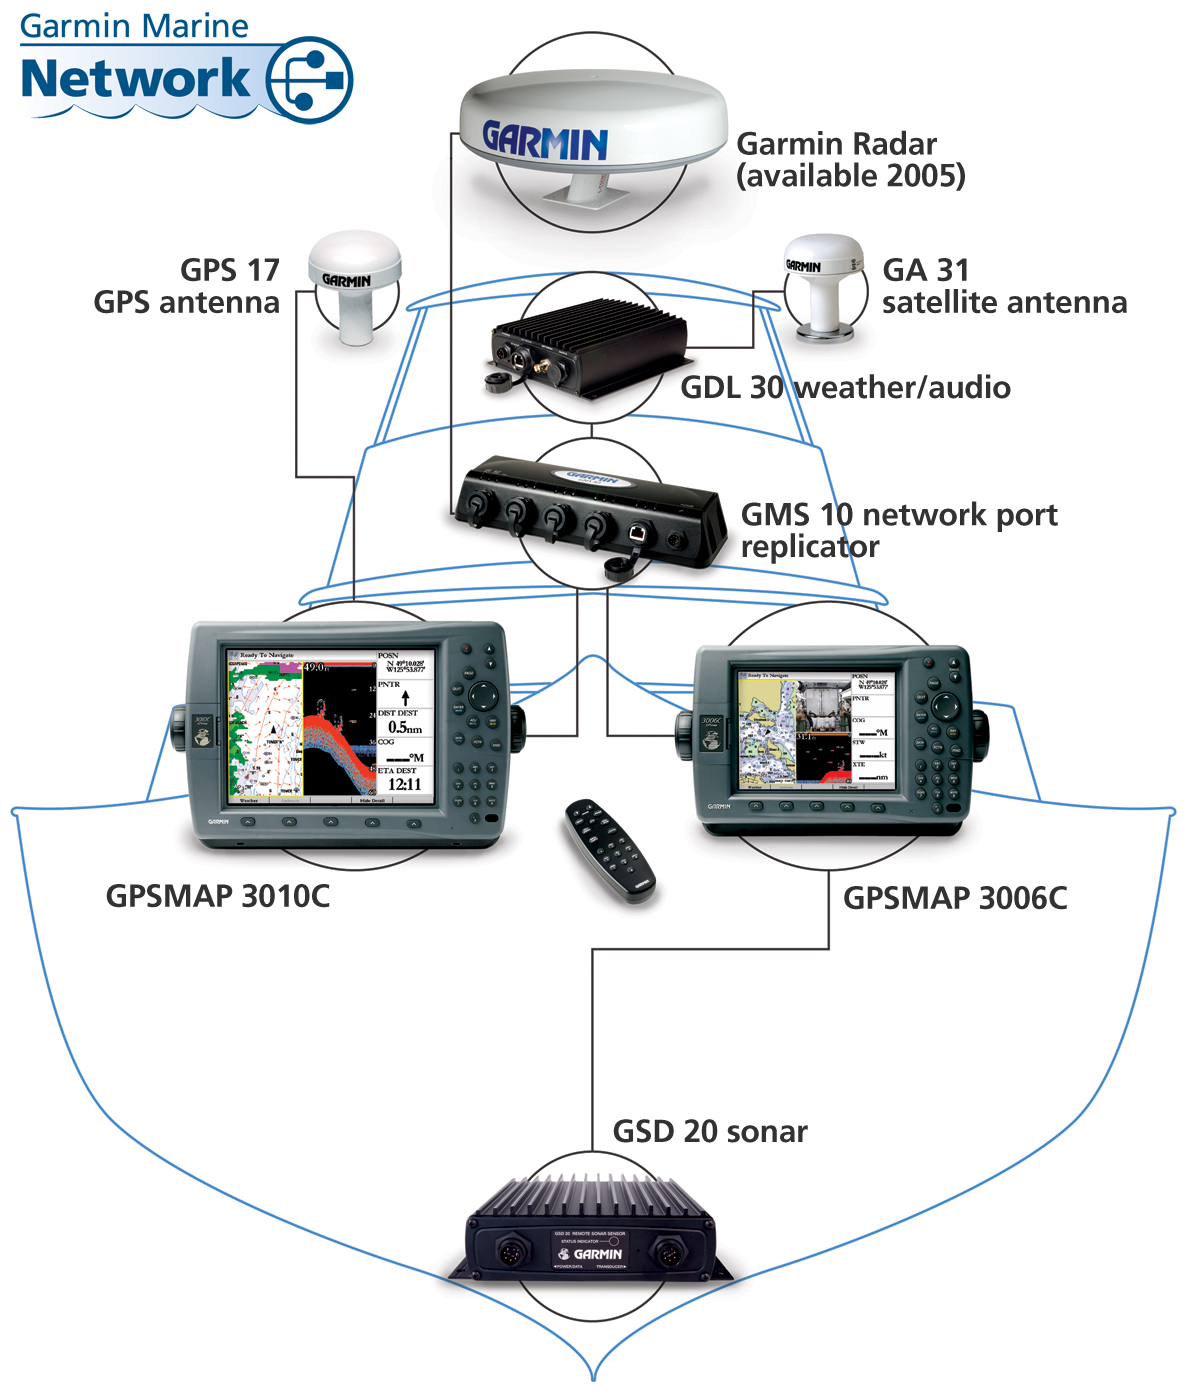 Garmin Marine Customer Service